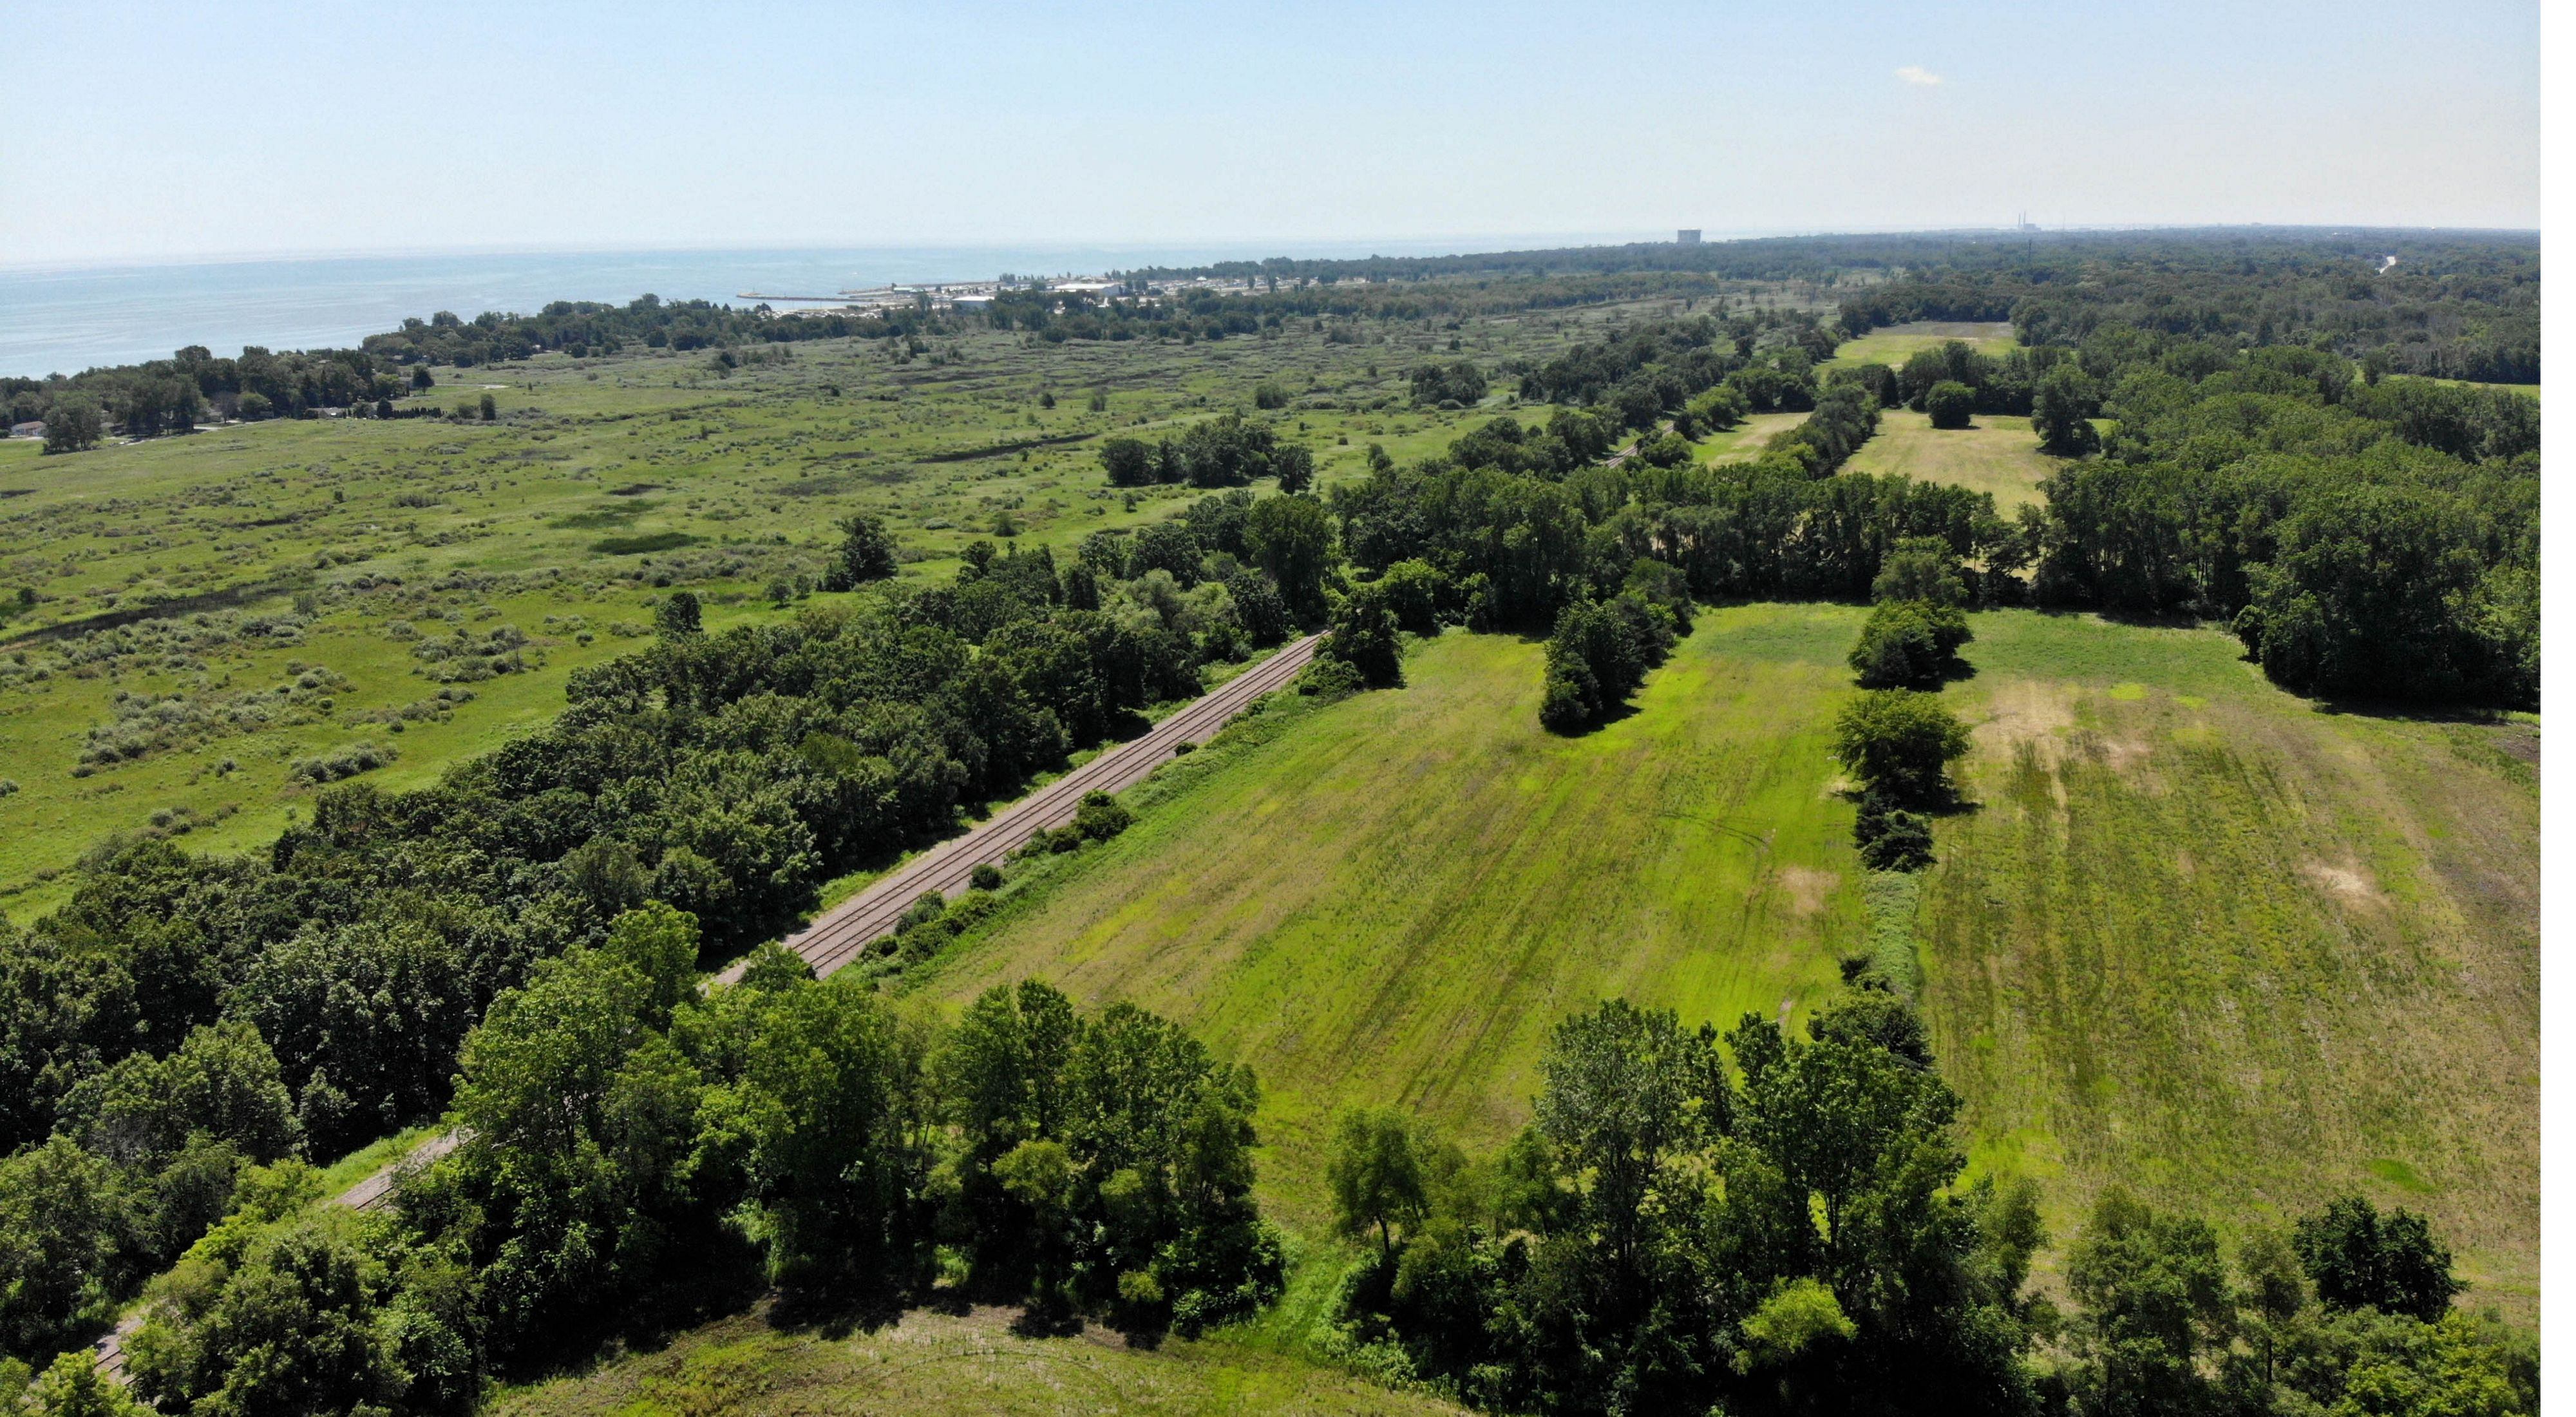 Aerial photo showing the restoration area in the foreground with open land and trees, the Chiwaukee Prairie wetlands beyond that and Lake Michigan in the distance